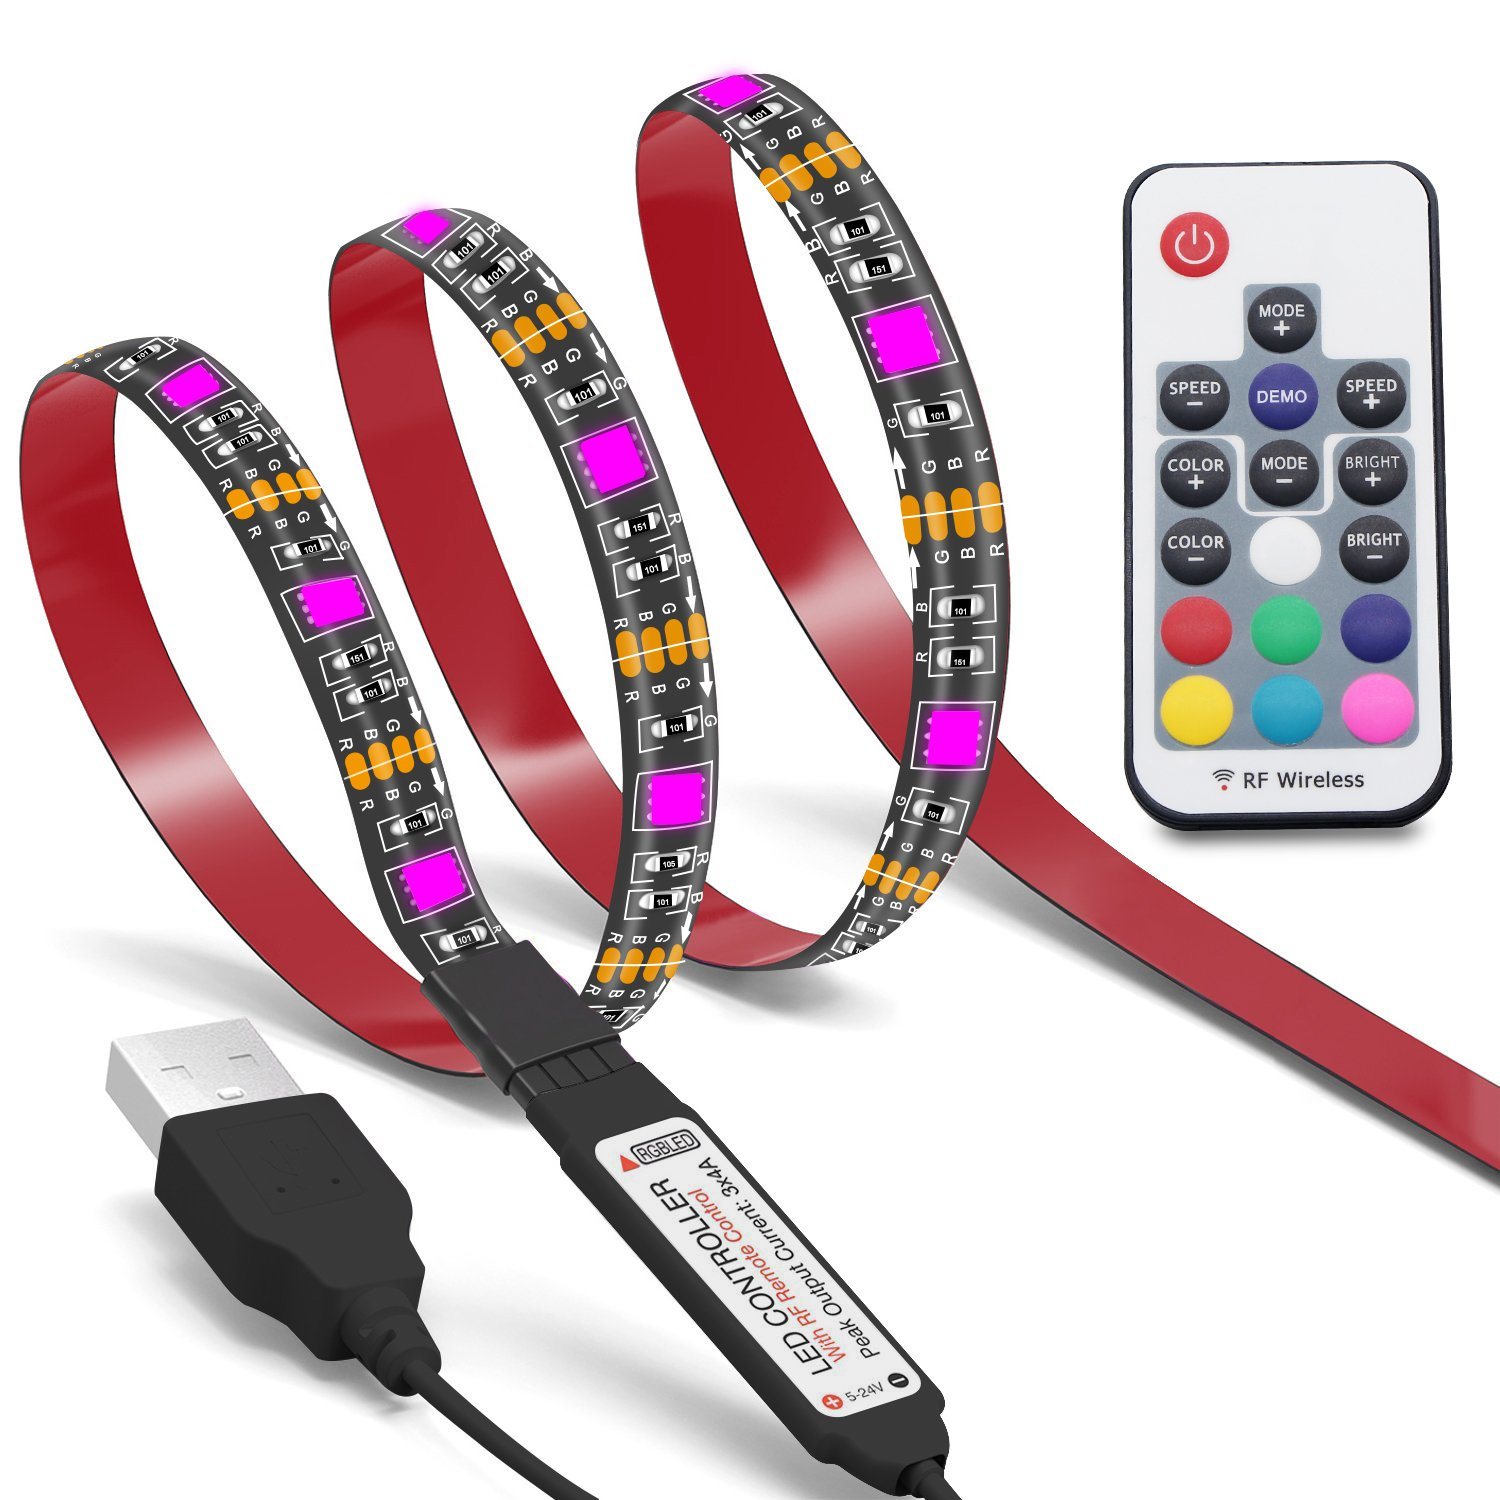 Colohas Bias Lighting TV Backlight for HDTV LED Strips Led Lights with Remote Control,78 inch 6.6ft RGB LED Strip Home Multi Color RGB LED Neon Accent TV Lighting for Flat Screen TV Accessories, Desktop PCable For Flat Screen TV, Desktop PC, Neon Sign Deco